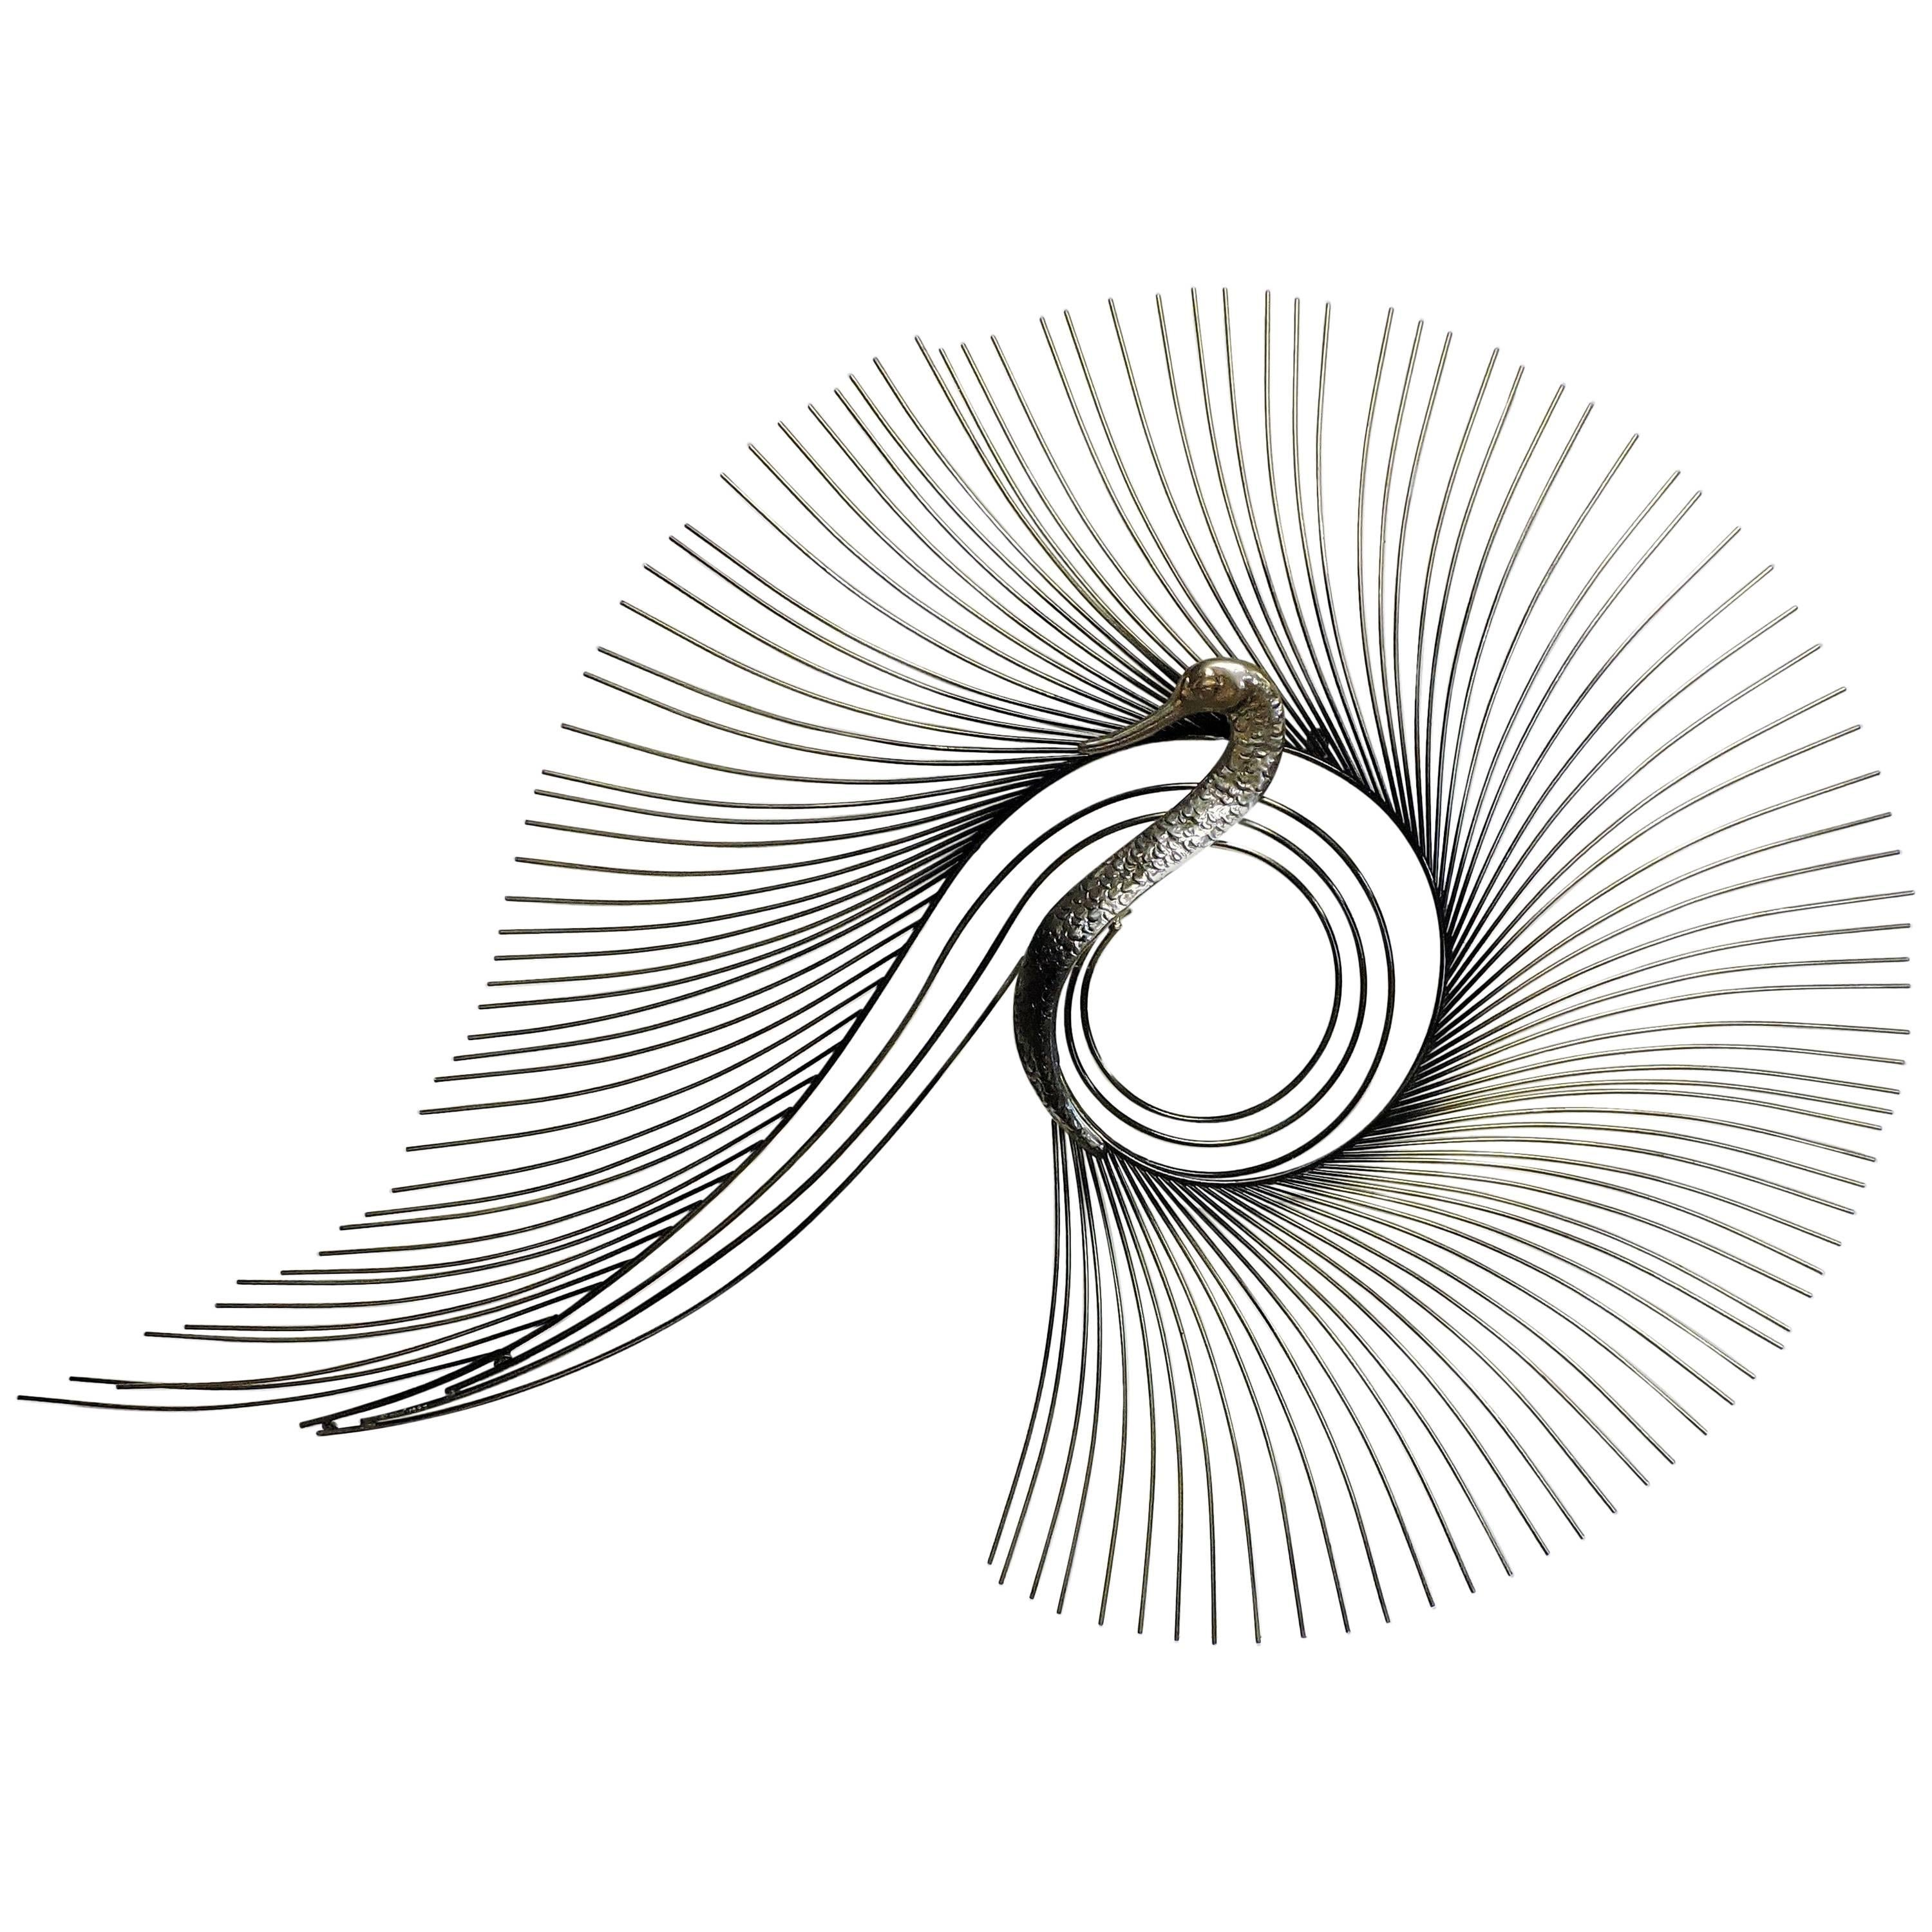 curtis c jere vintage peacock brass bird of paradise wall art 1970s Interior Decor curtis c jere vintage peacock brass bird of paradise wall art hanging chrome for sale at 1stdibs